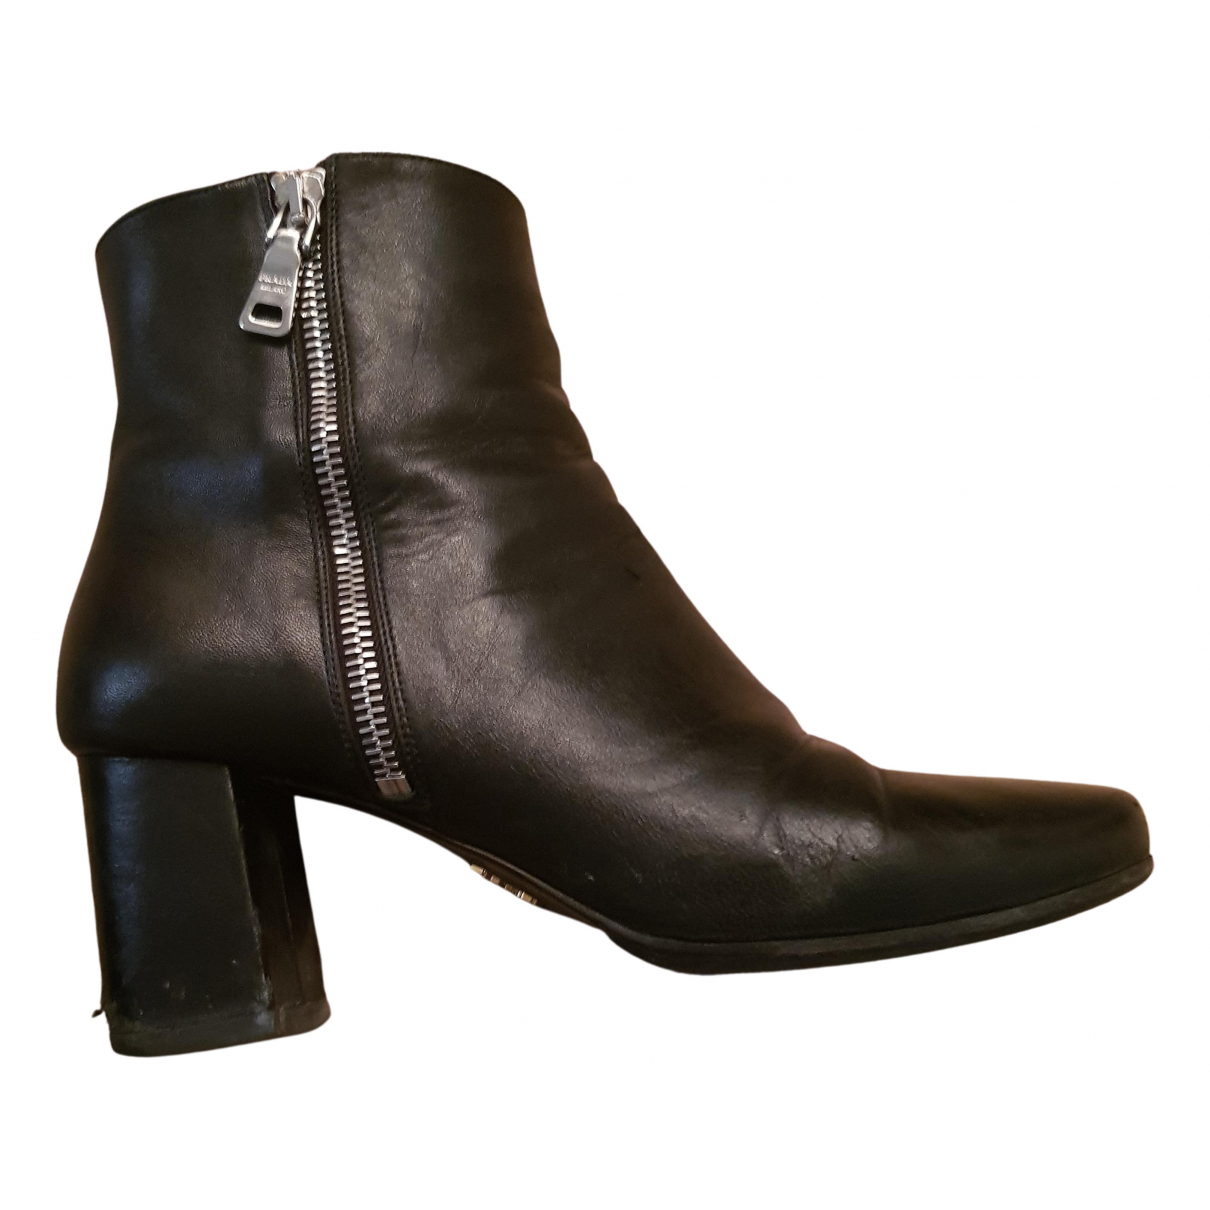 Prada N Black Leather Ankle boots for Women 37 EU